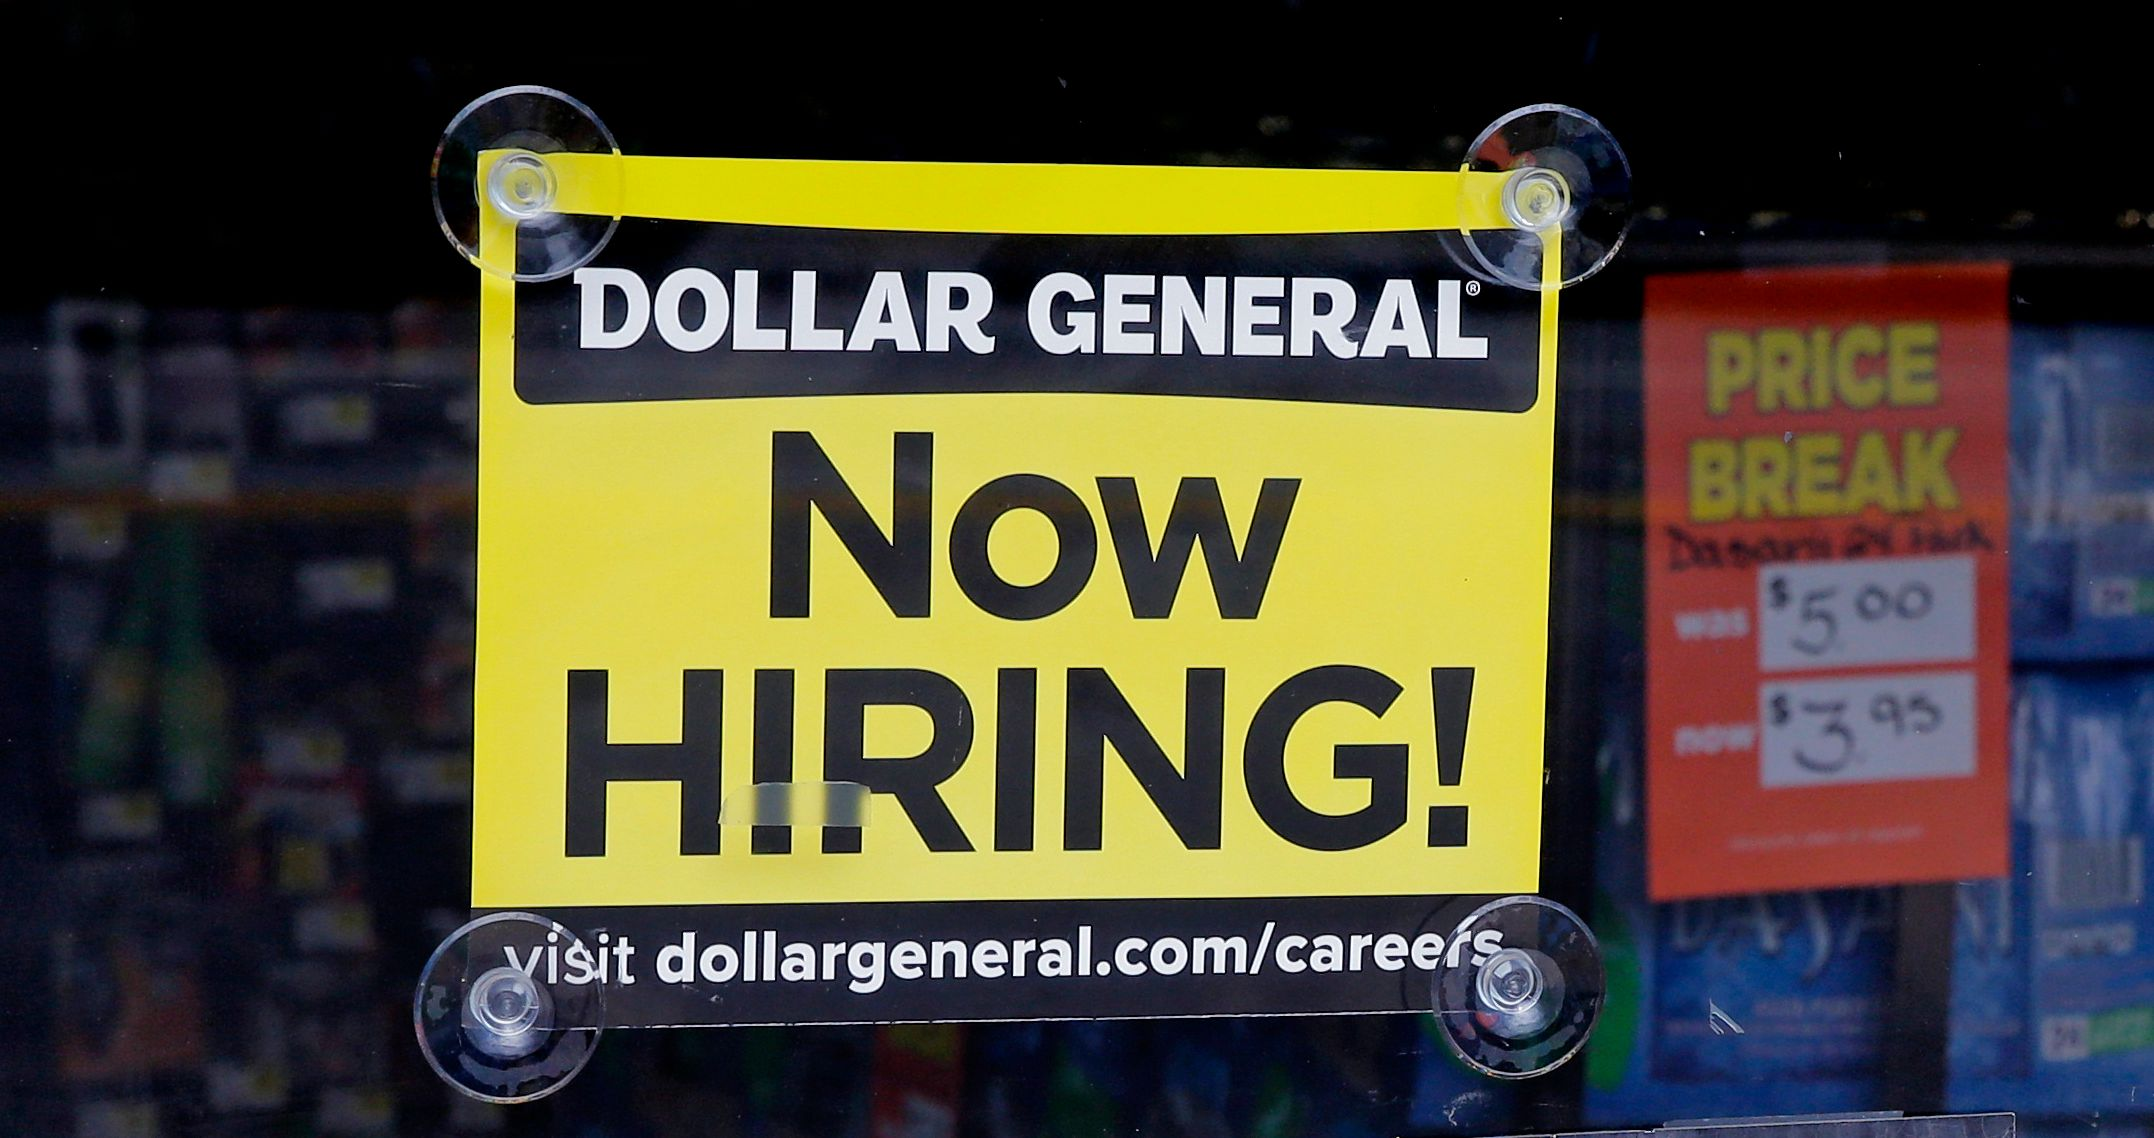 U.S. employers added disappointing 103,000 jobs in March; colder weather cited as a reason